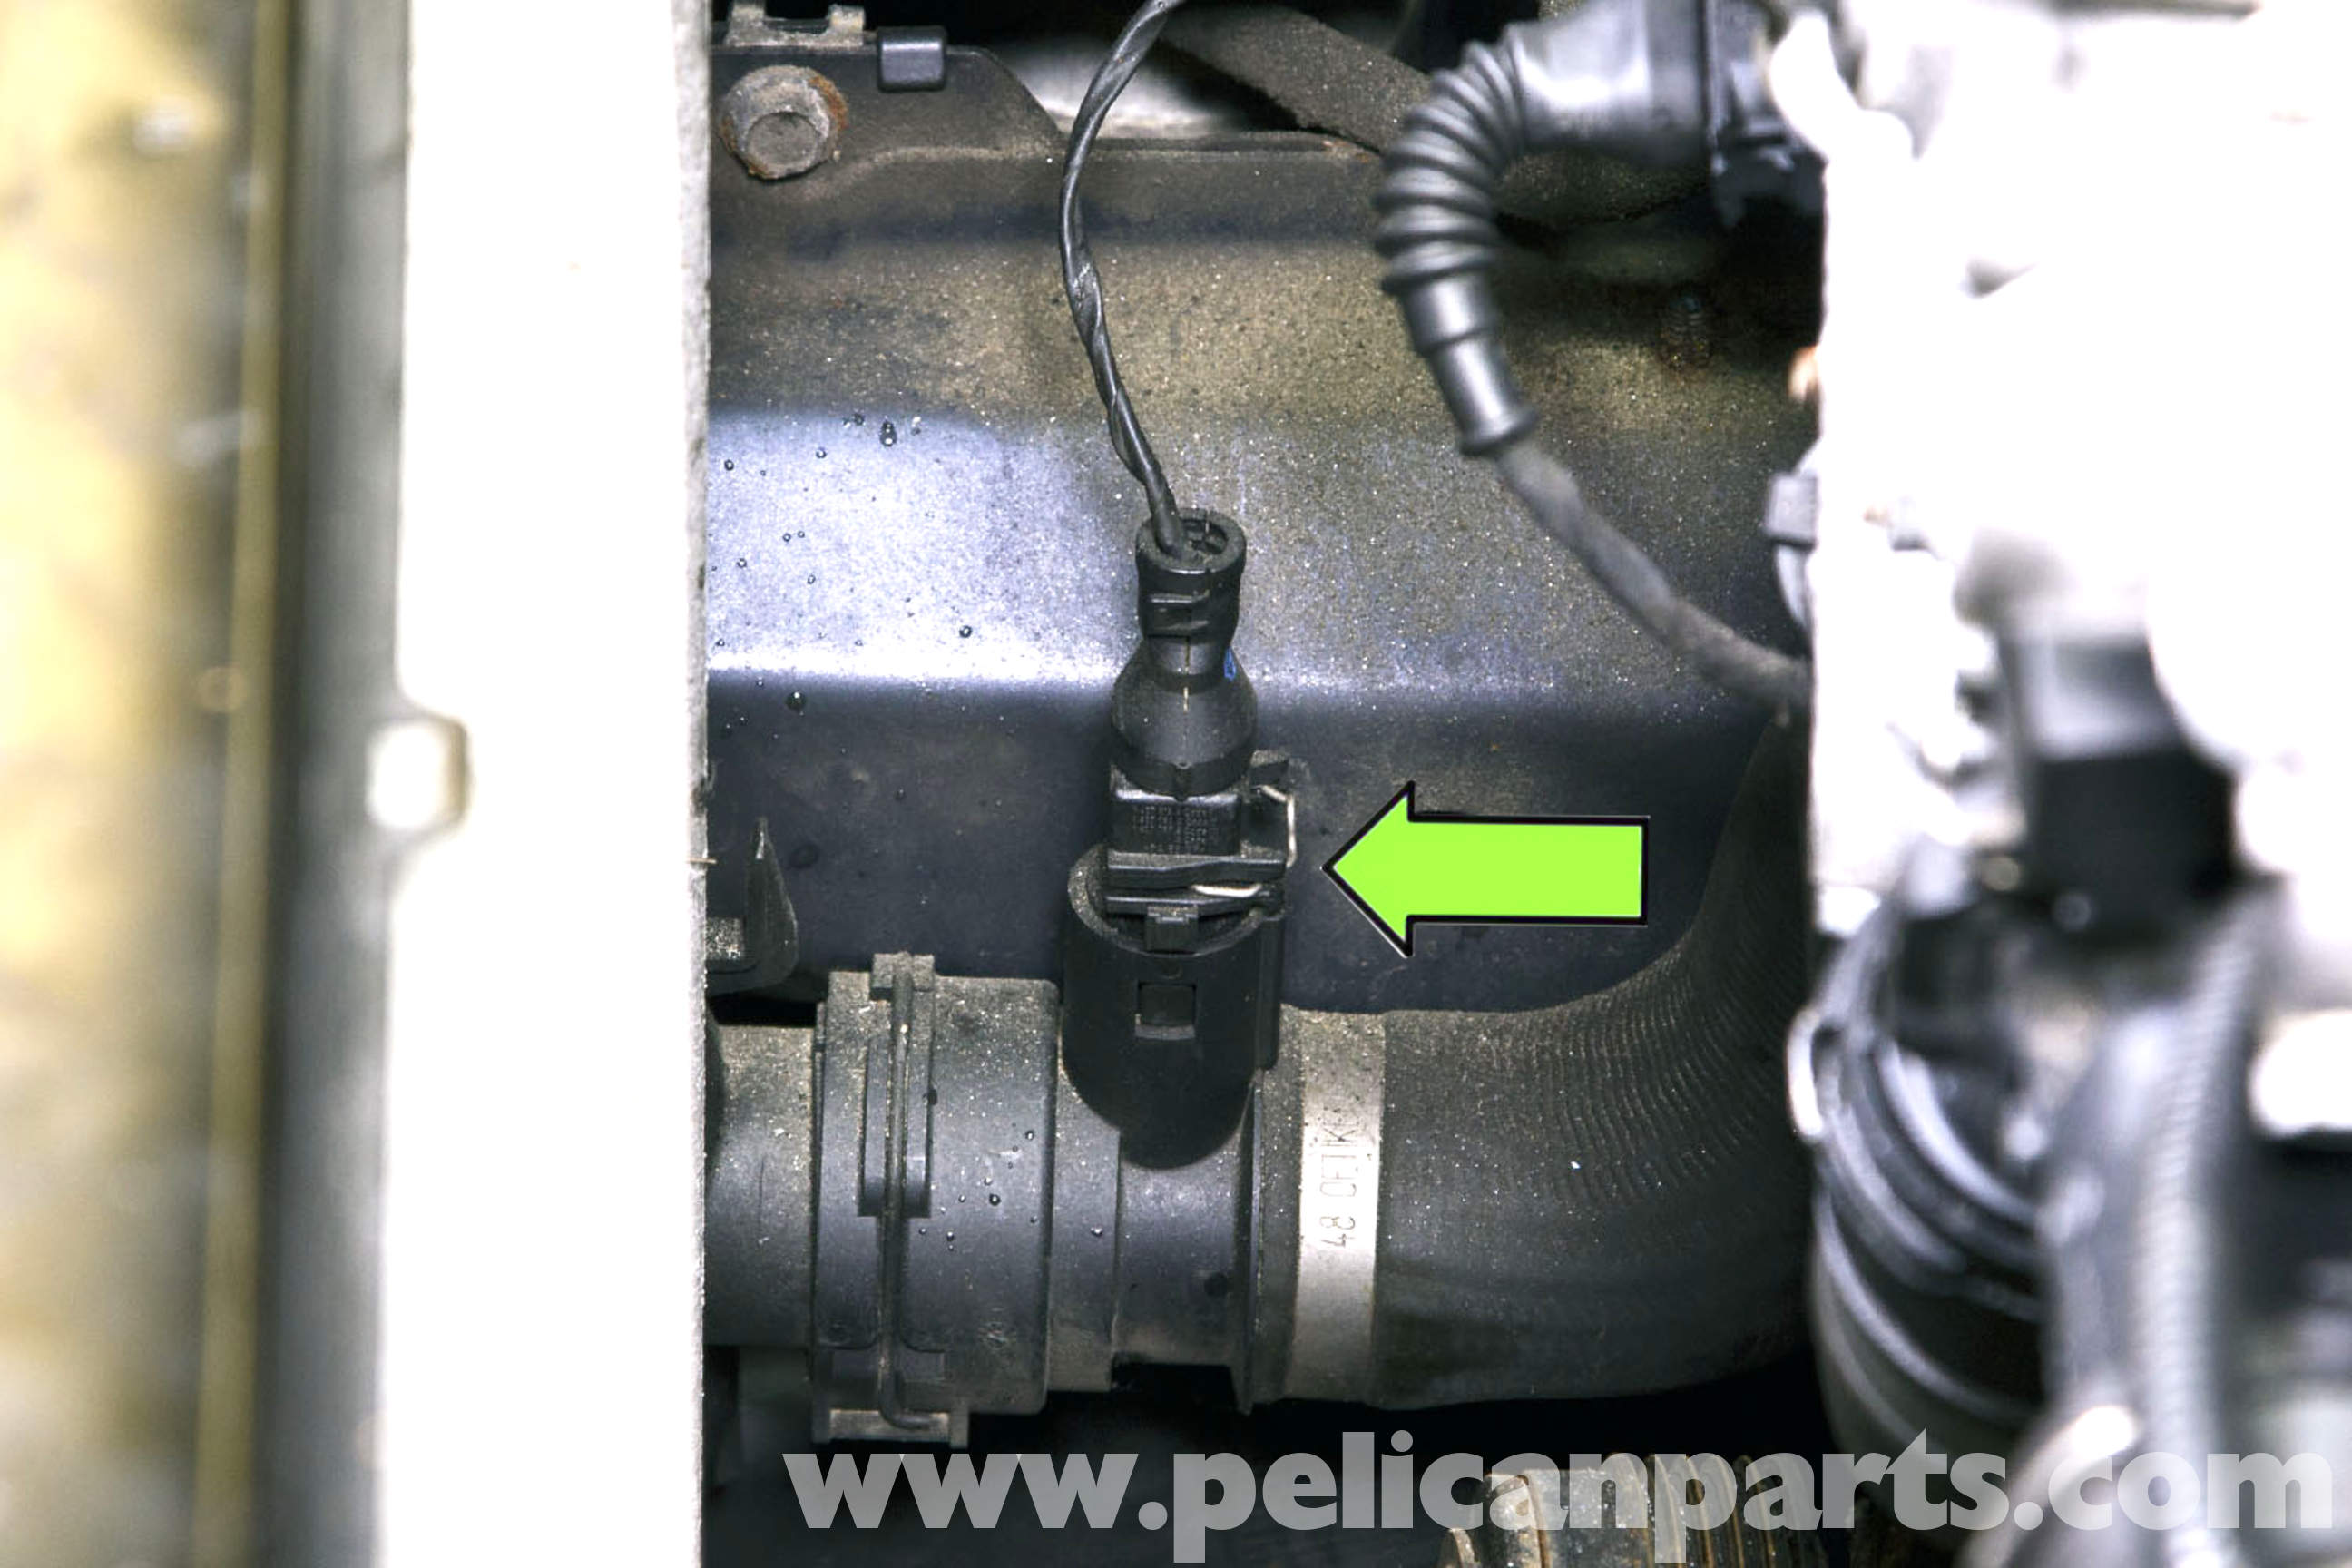 pic01 bmw e46 radiator outlet temperature sensor replacement bmw 325i e46 fan wiring diagram at readyjetset.co